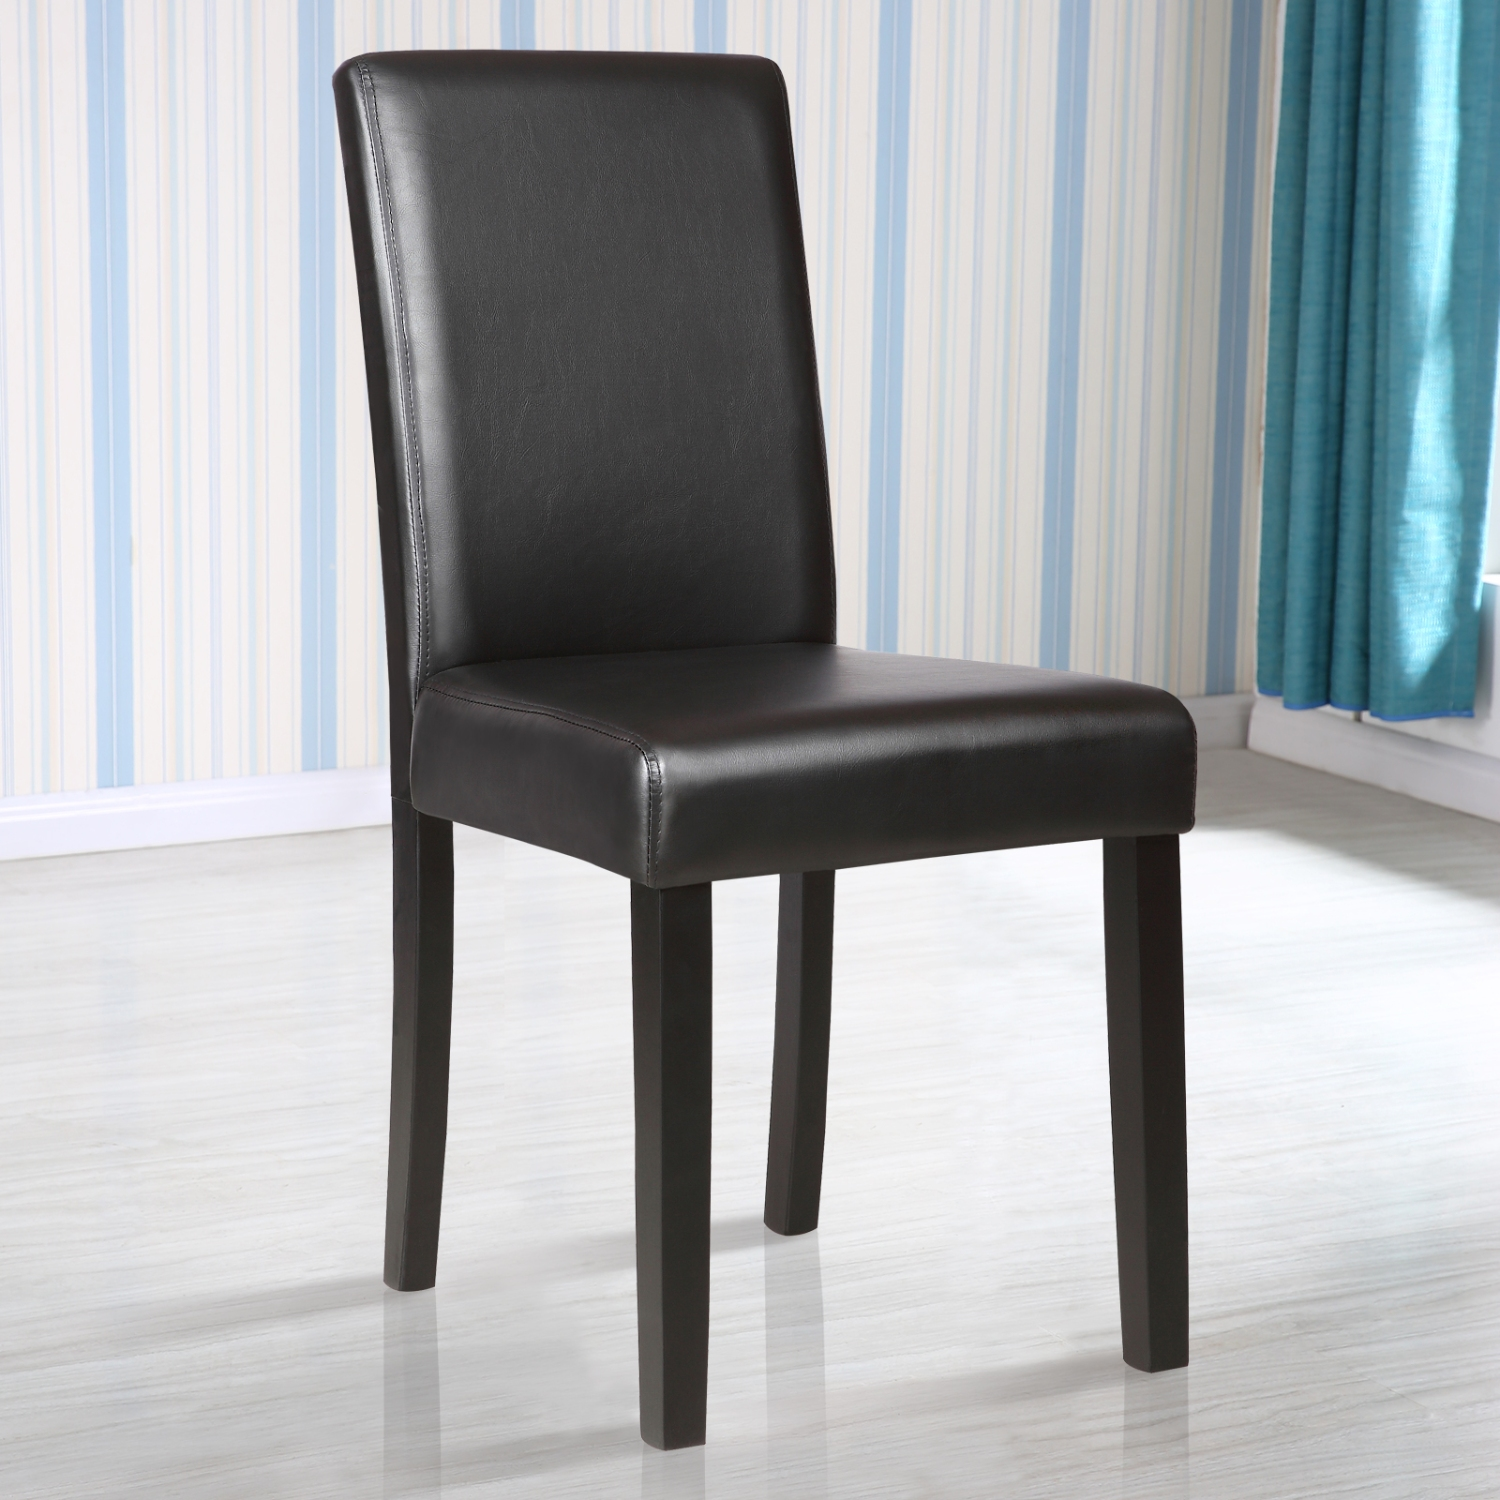 Black Dining Room Chair: Elegant Black Leather Dining Chair Kitchen Dinette Dining